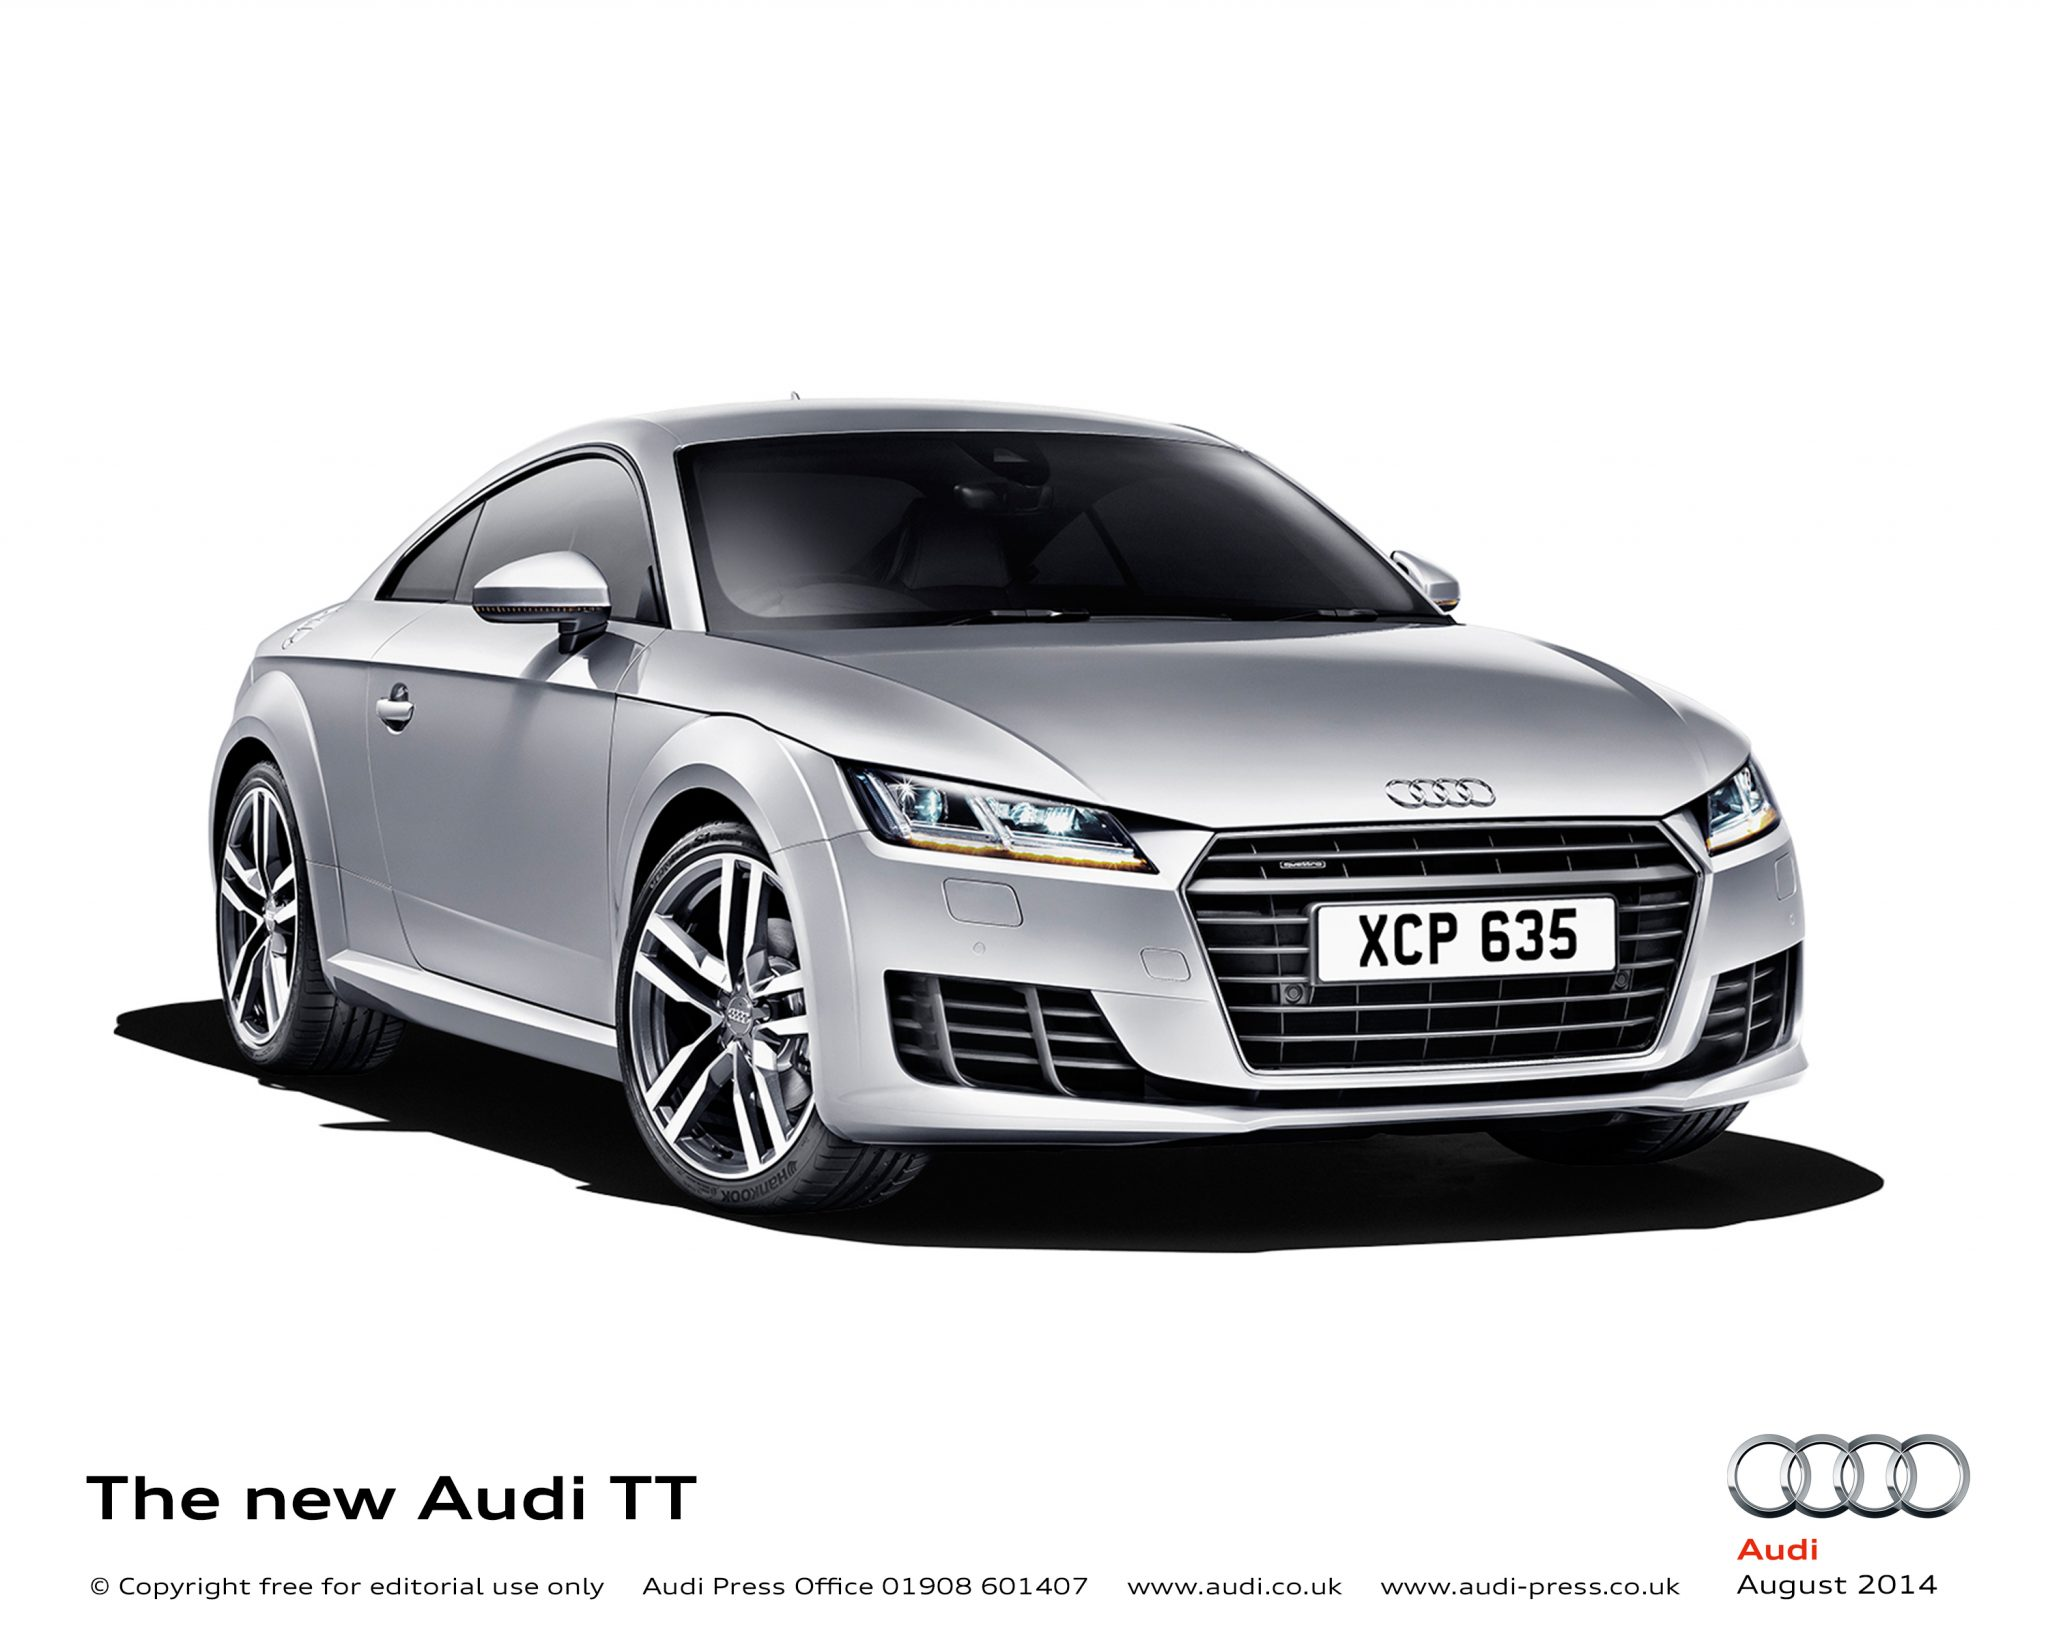 tron e the audi latest way cars new of on all road information model car price gray wallpapers